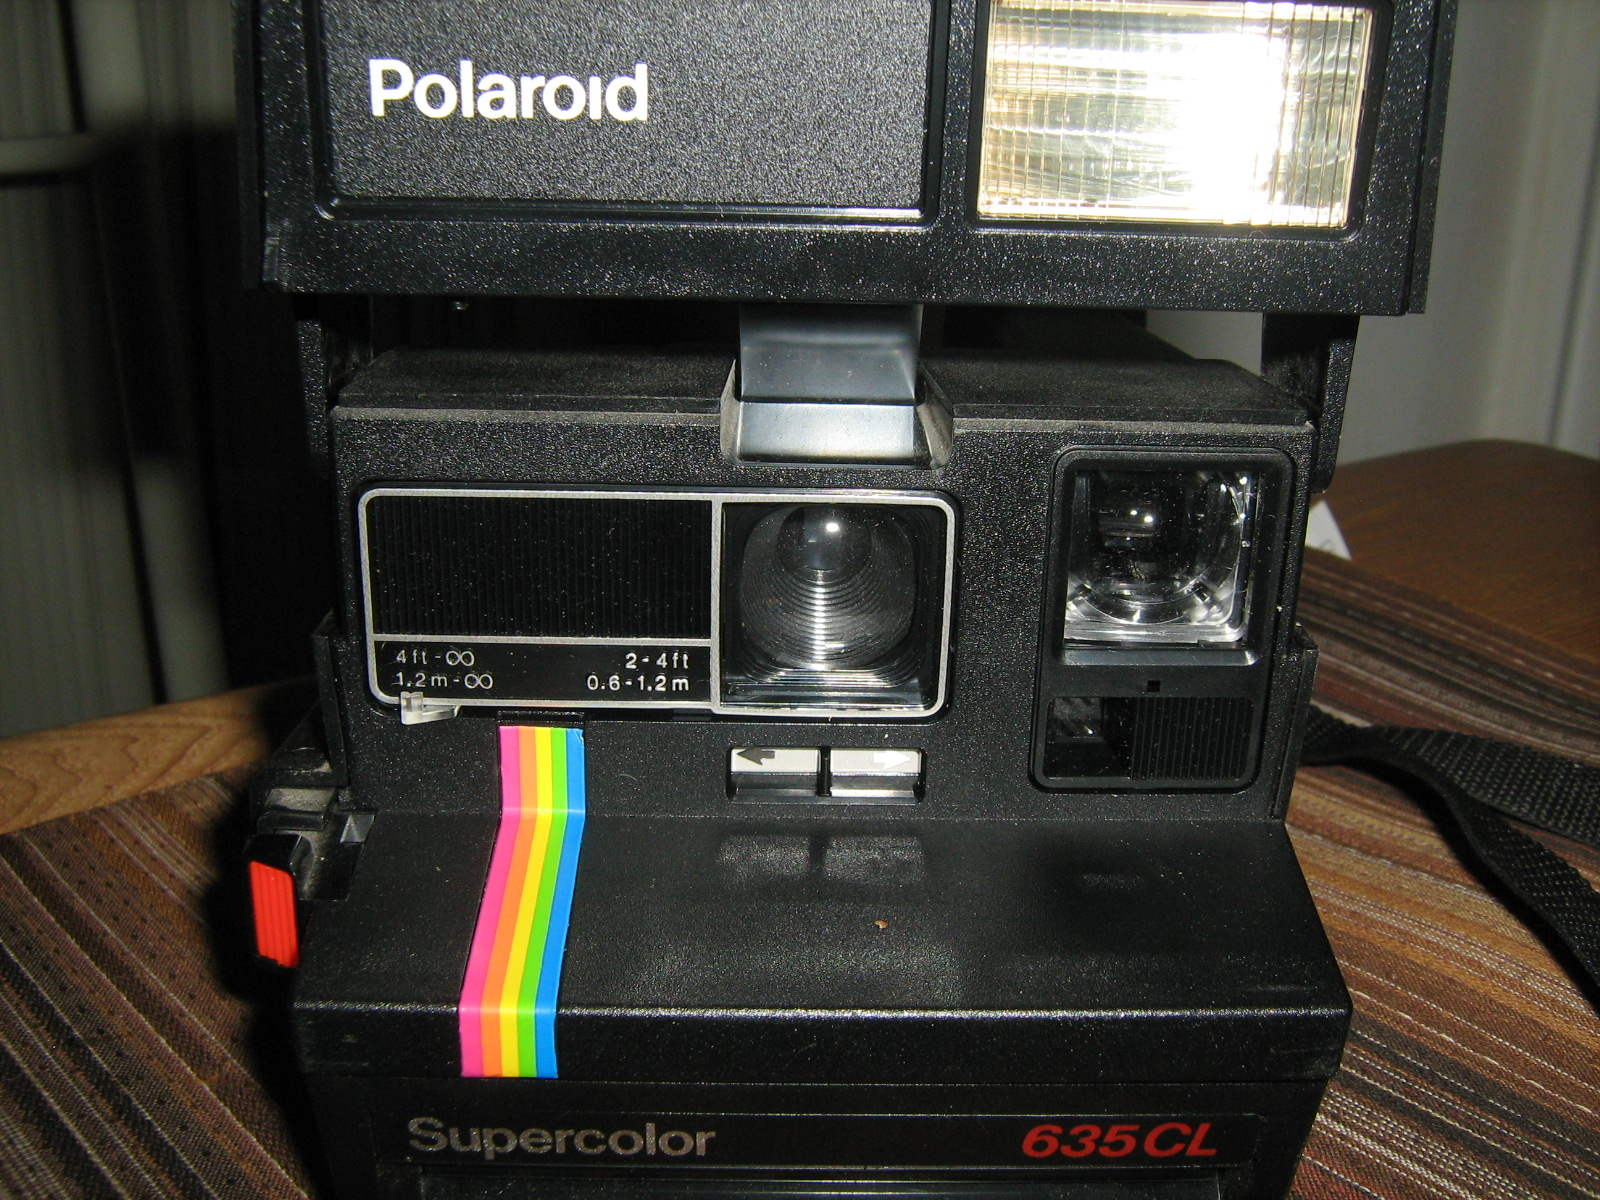 Vintage Polaroid Camera - Supercolor 635CL